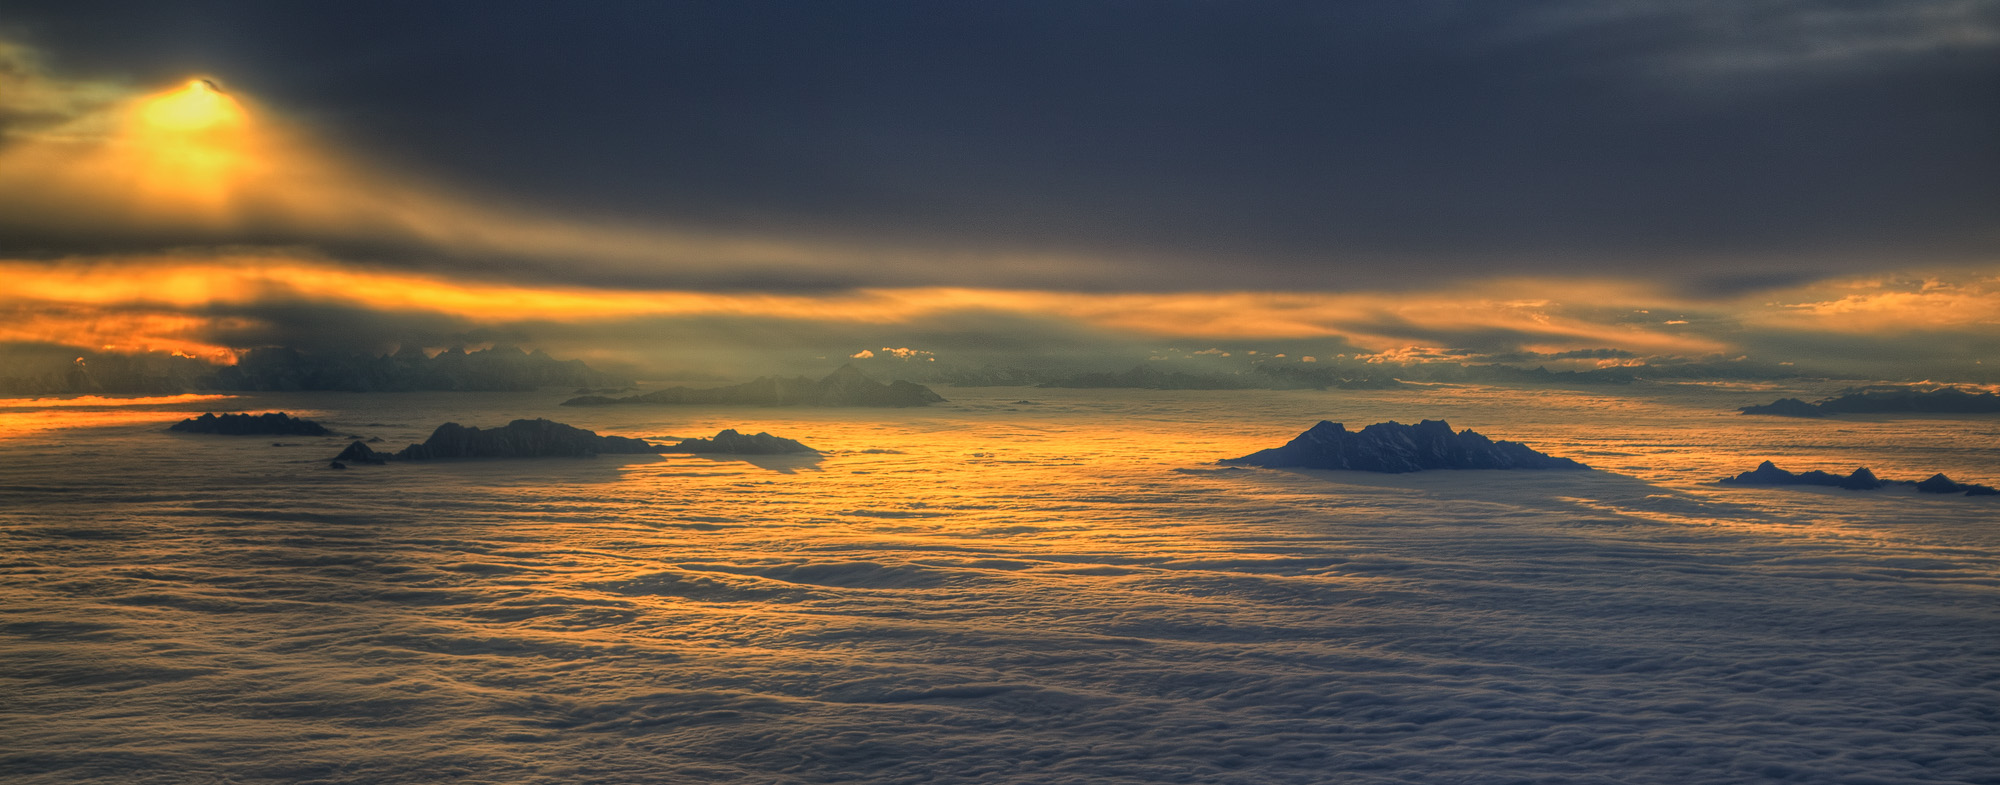 Sunset above the clouds, on plane from Chengdu to Jiuzhaigou!